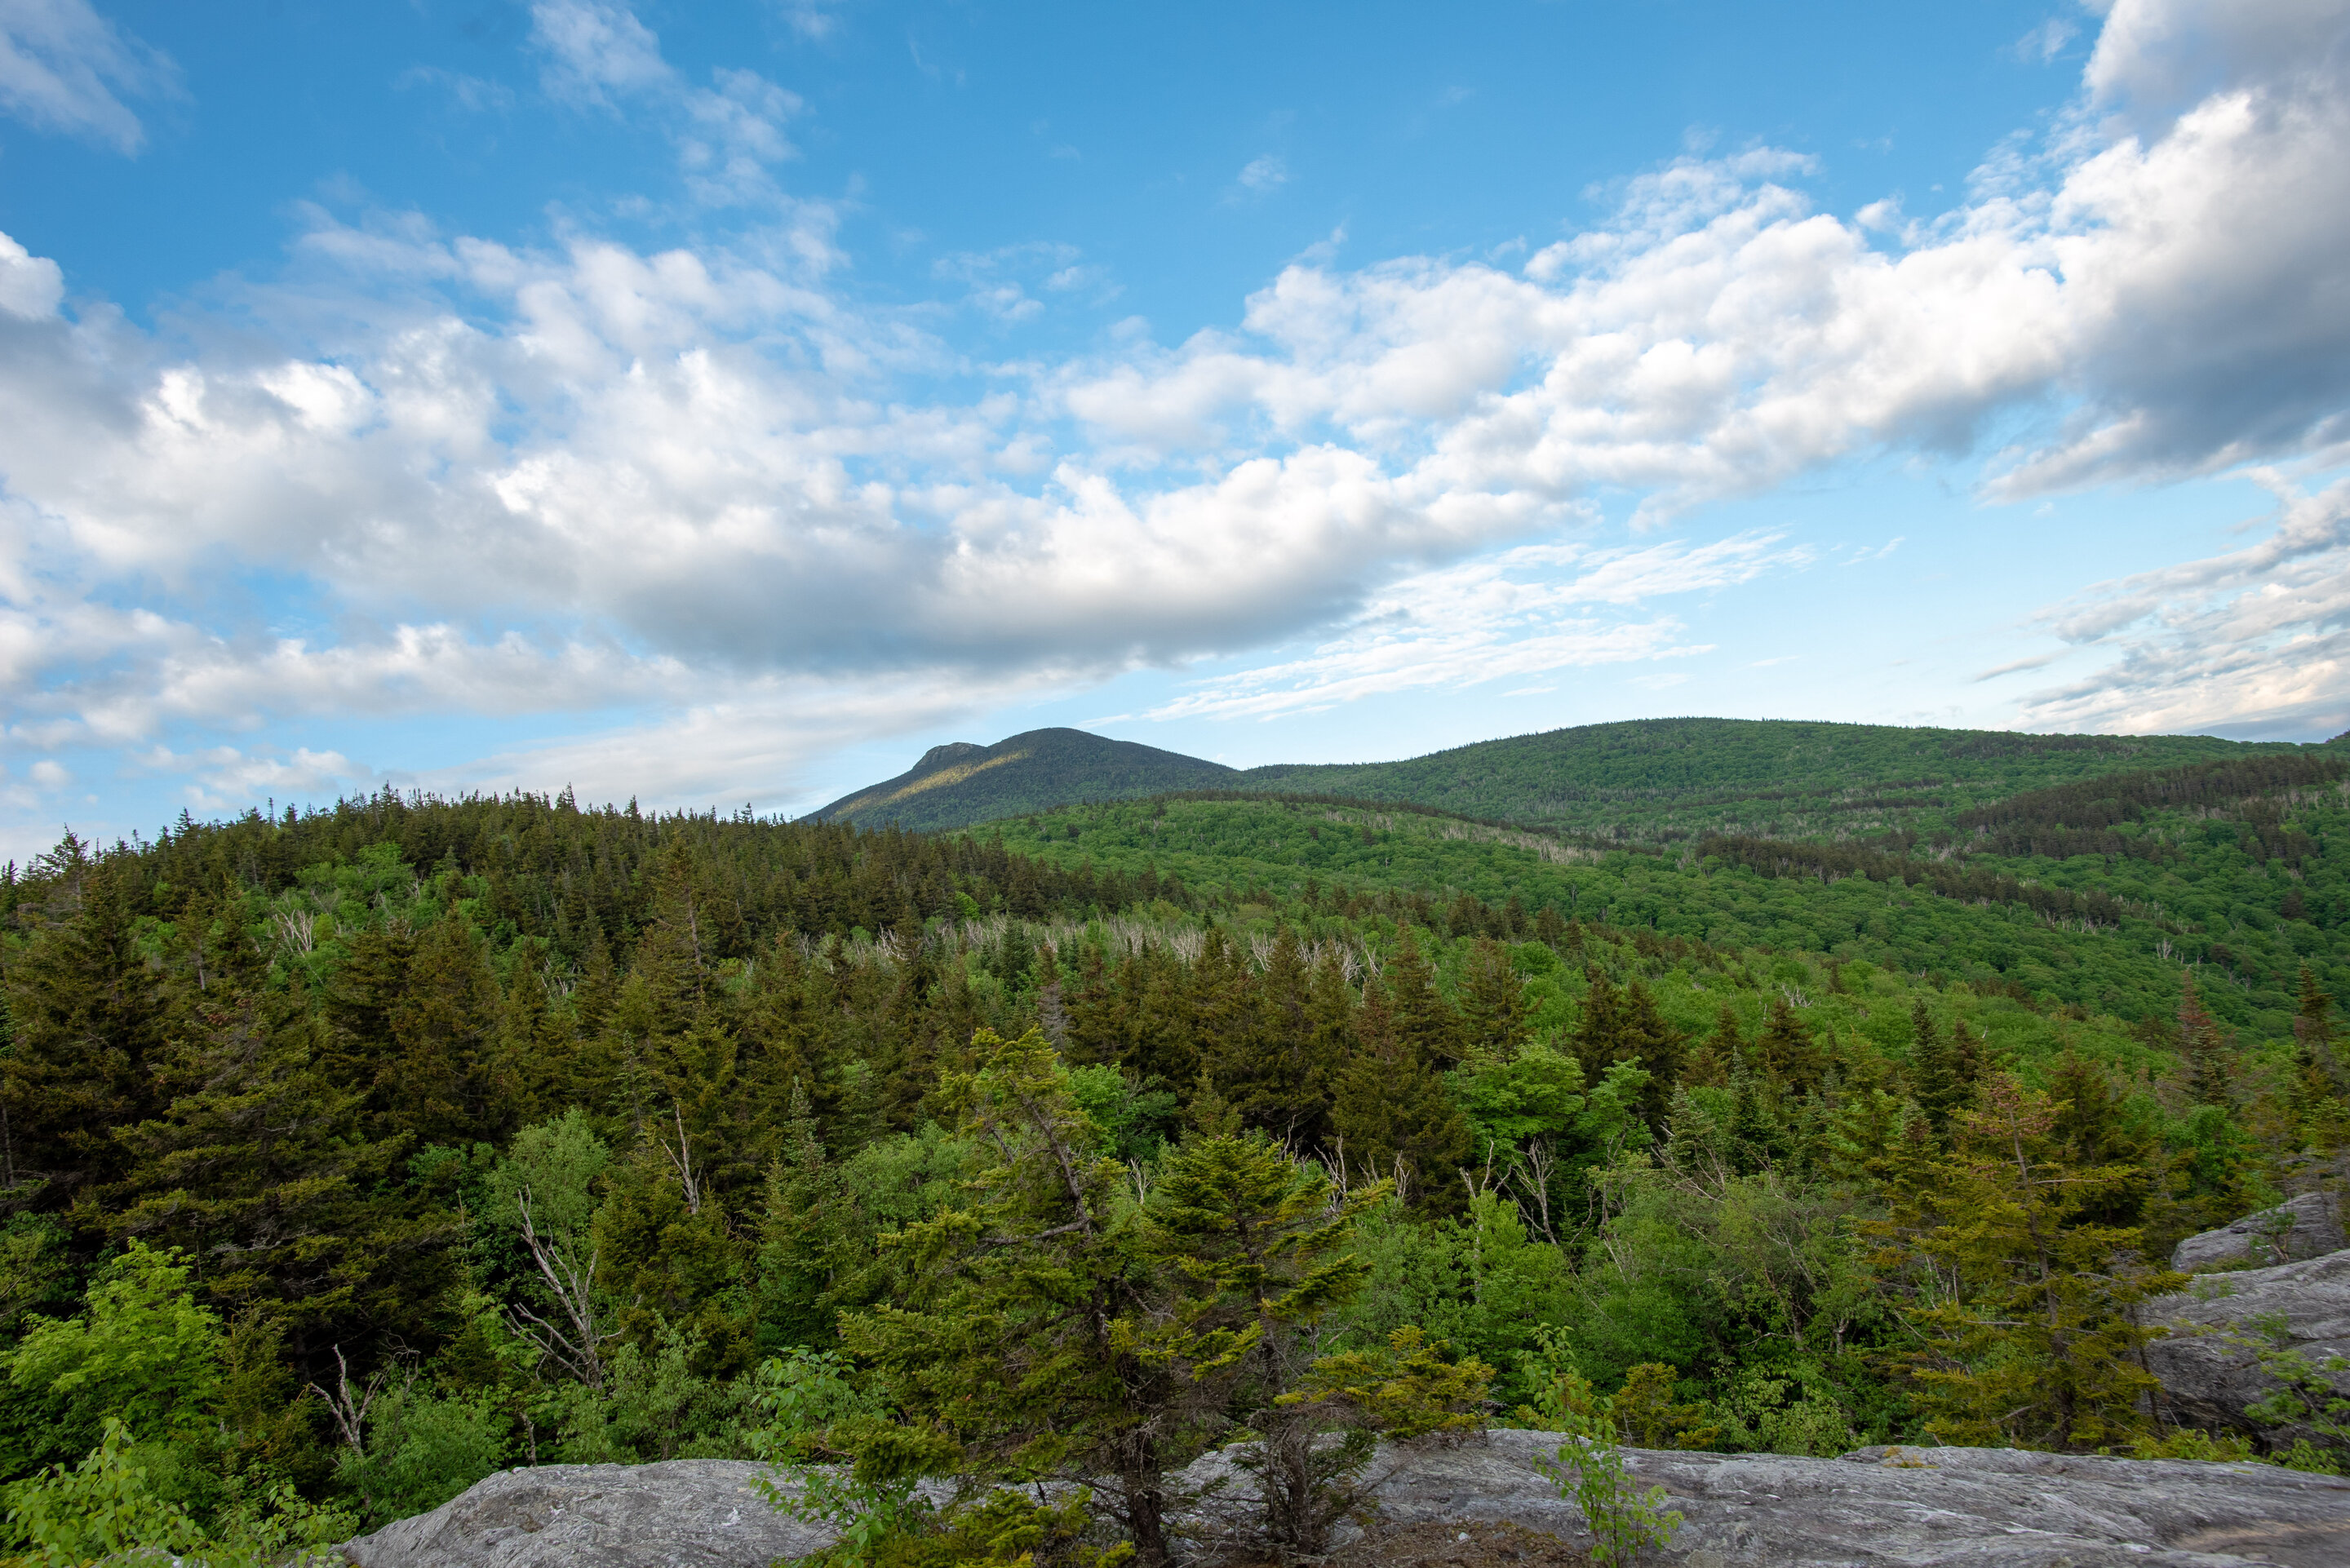 Vermont has conserved one third of the land needed for an ecologically functional future